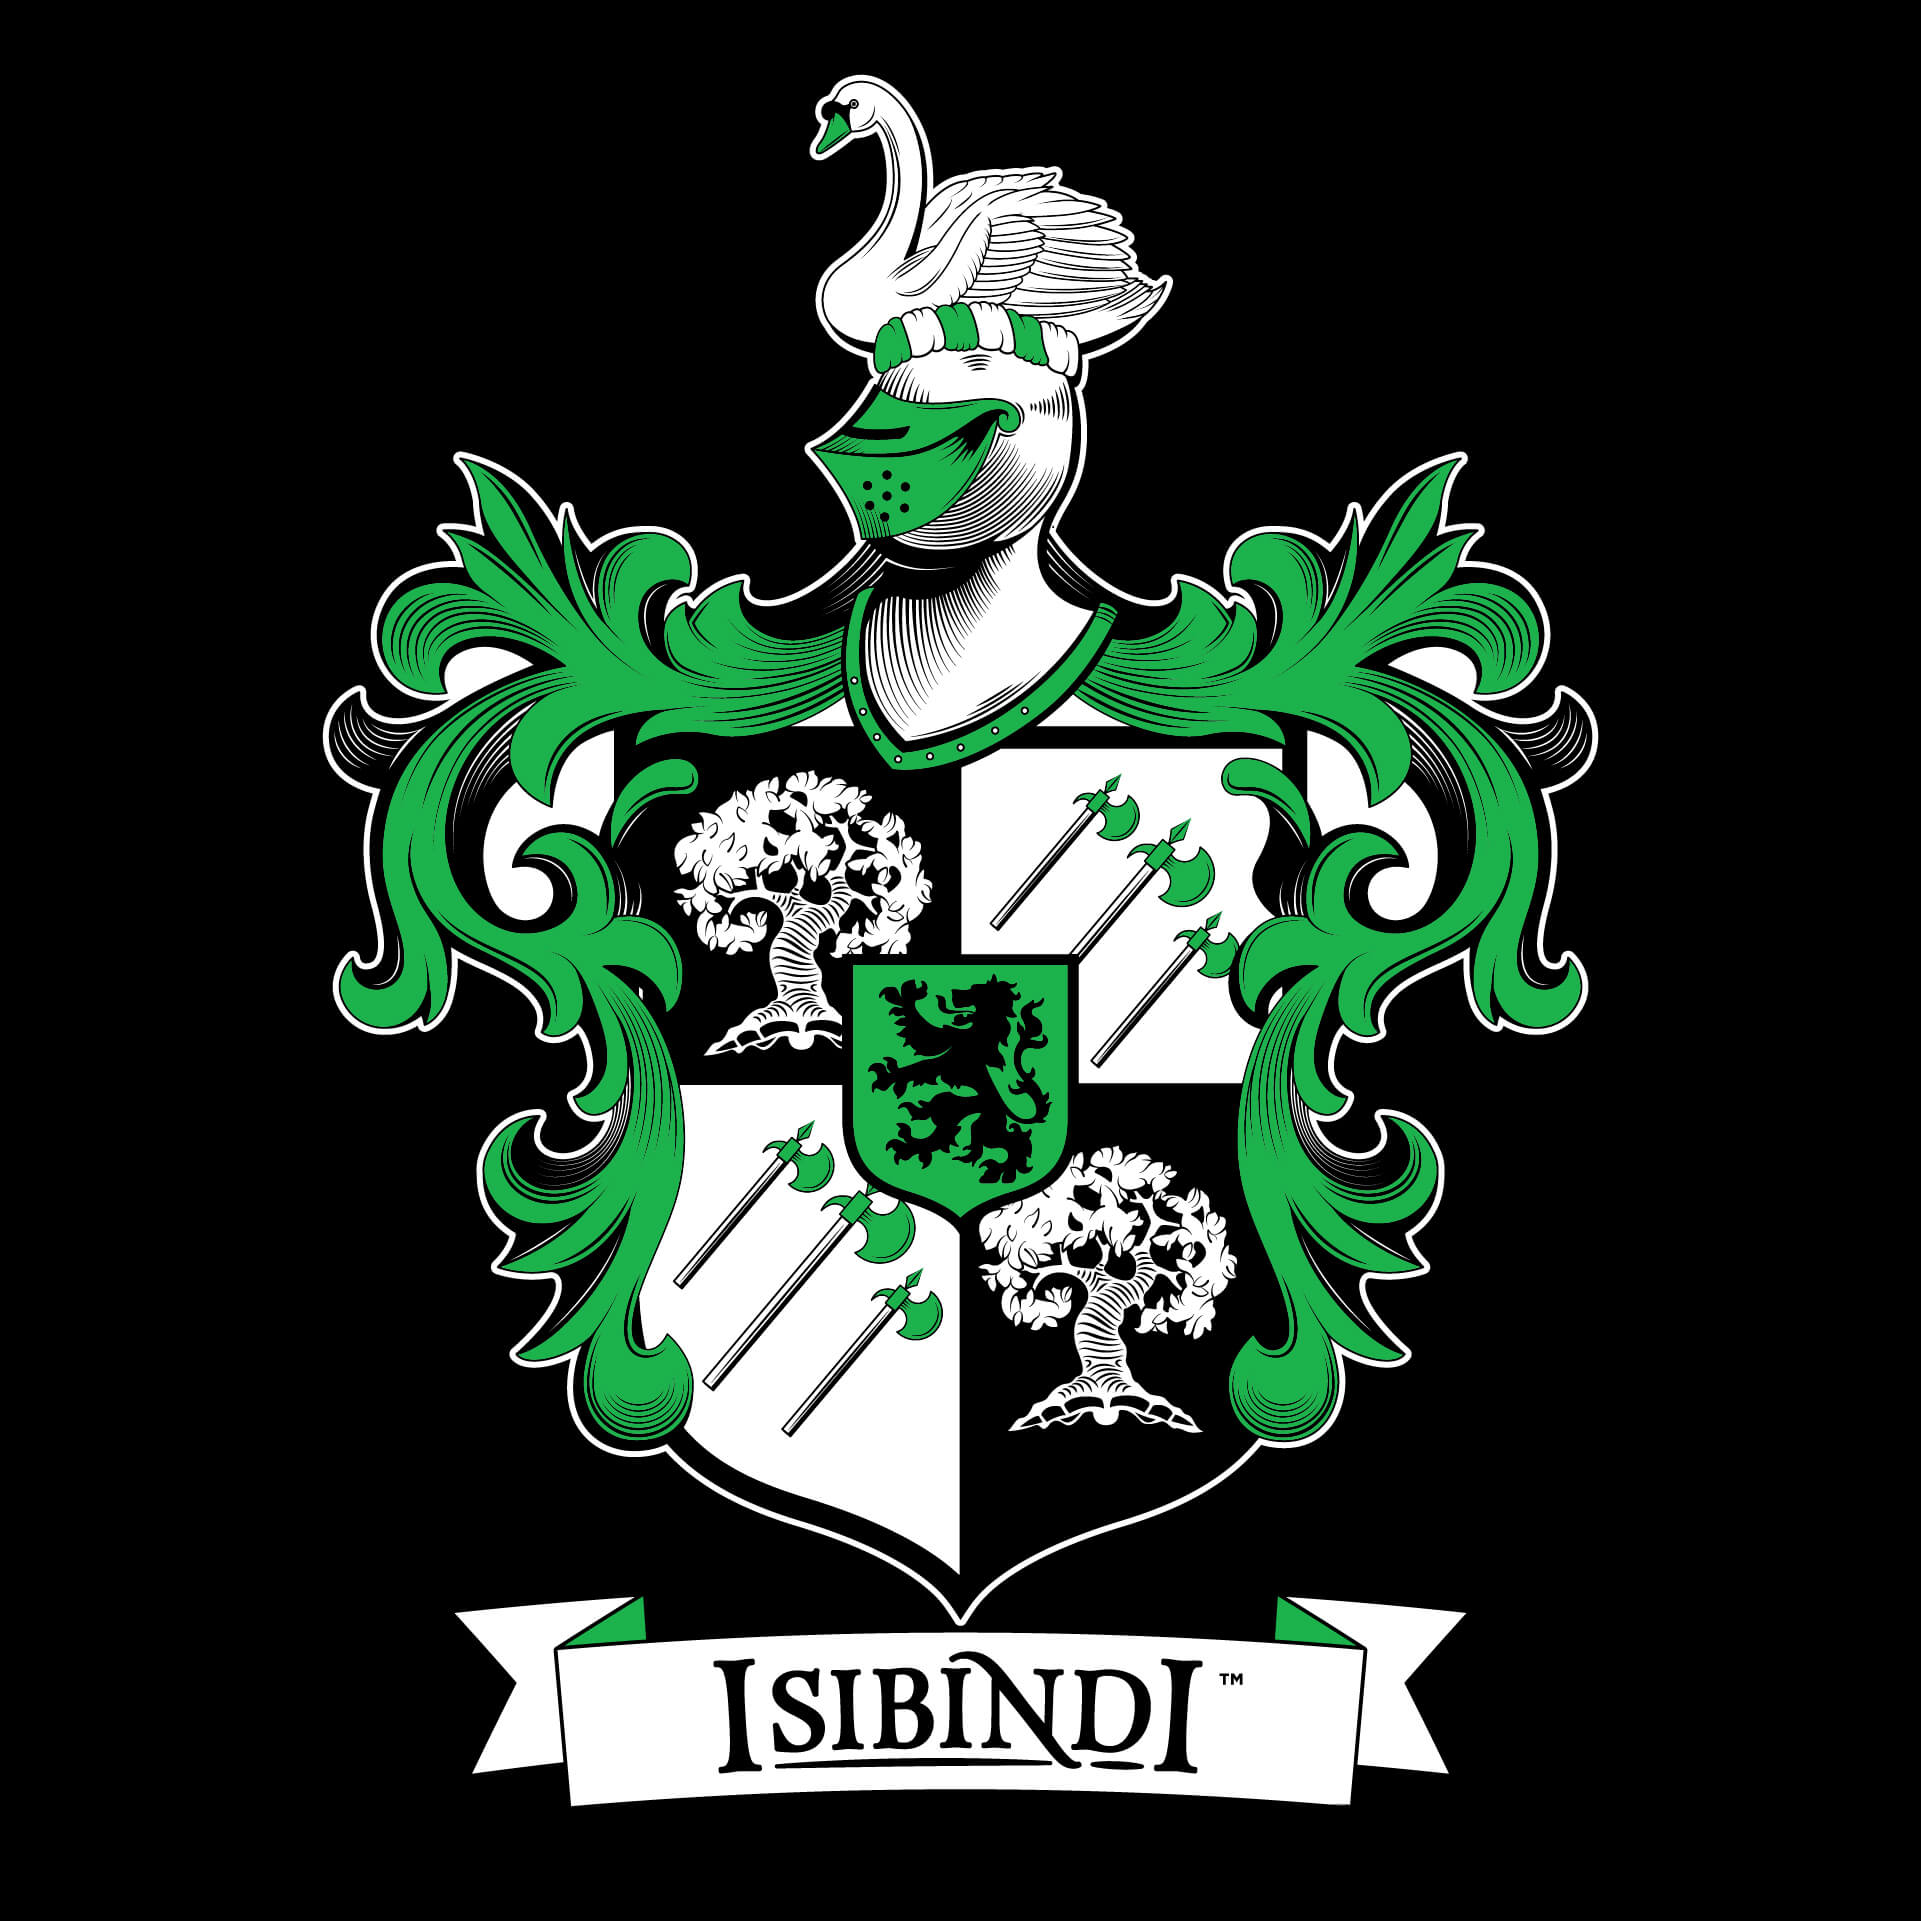 Isibindi's Crest - Full Color (for White/Light backgrounds).↓ Download EPS | ↓ Download PNG2-Color (for White/Light backgrounds).↓ Download EPS | ↓ Download PNG—Full Color (for Black/Dark backgrounds).↓ Download EPS | ↓ Download PNG2-Color (for Black/Dark backgrounds).↓ Download EPS | ↓ Download PNG